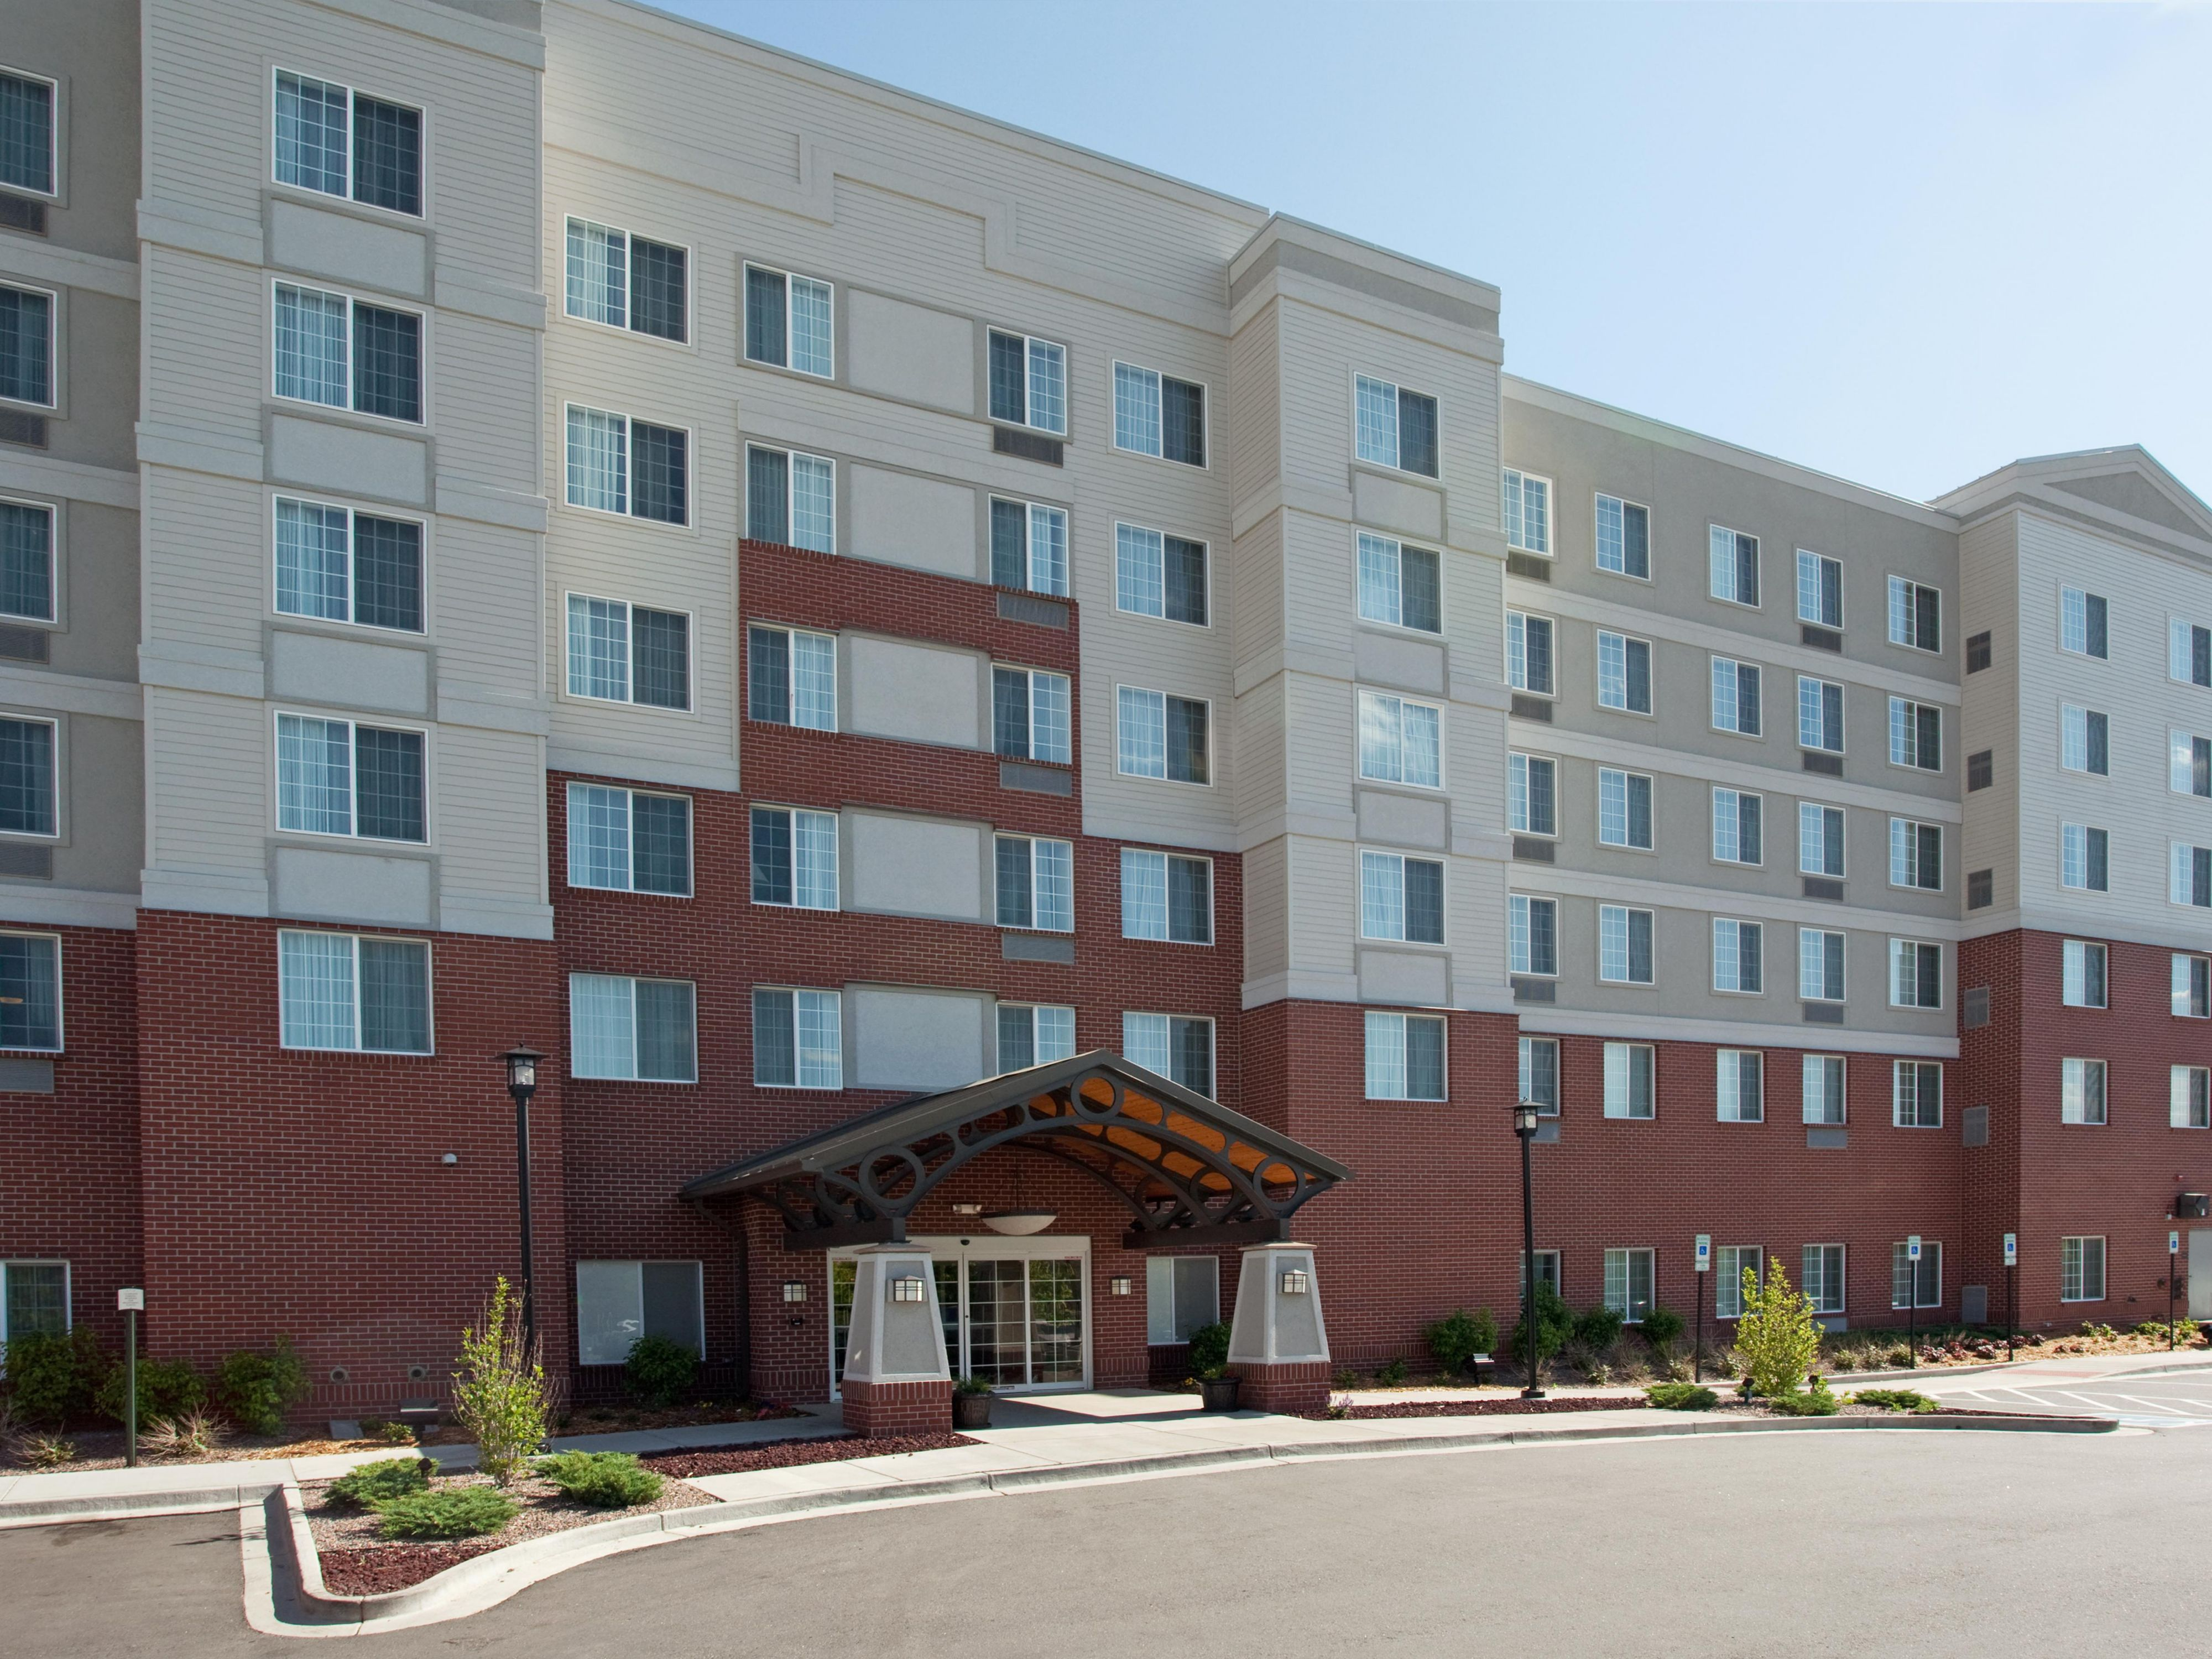 Extended Stay Hotels Close To Airport Staybridge Suites Denver